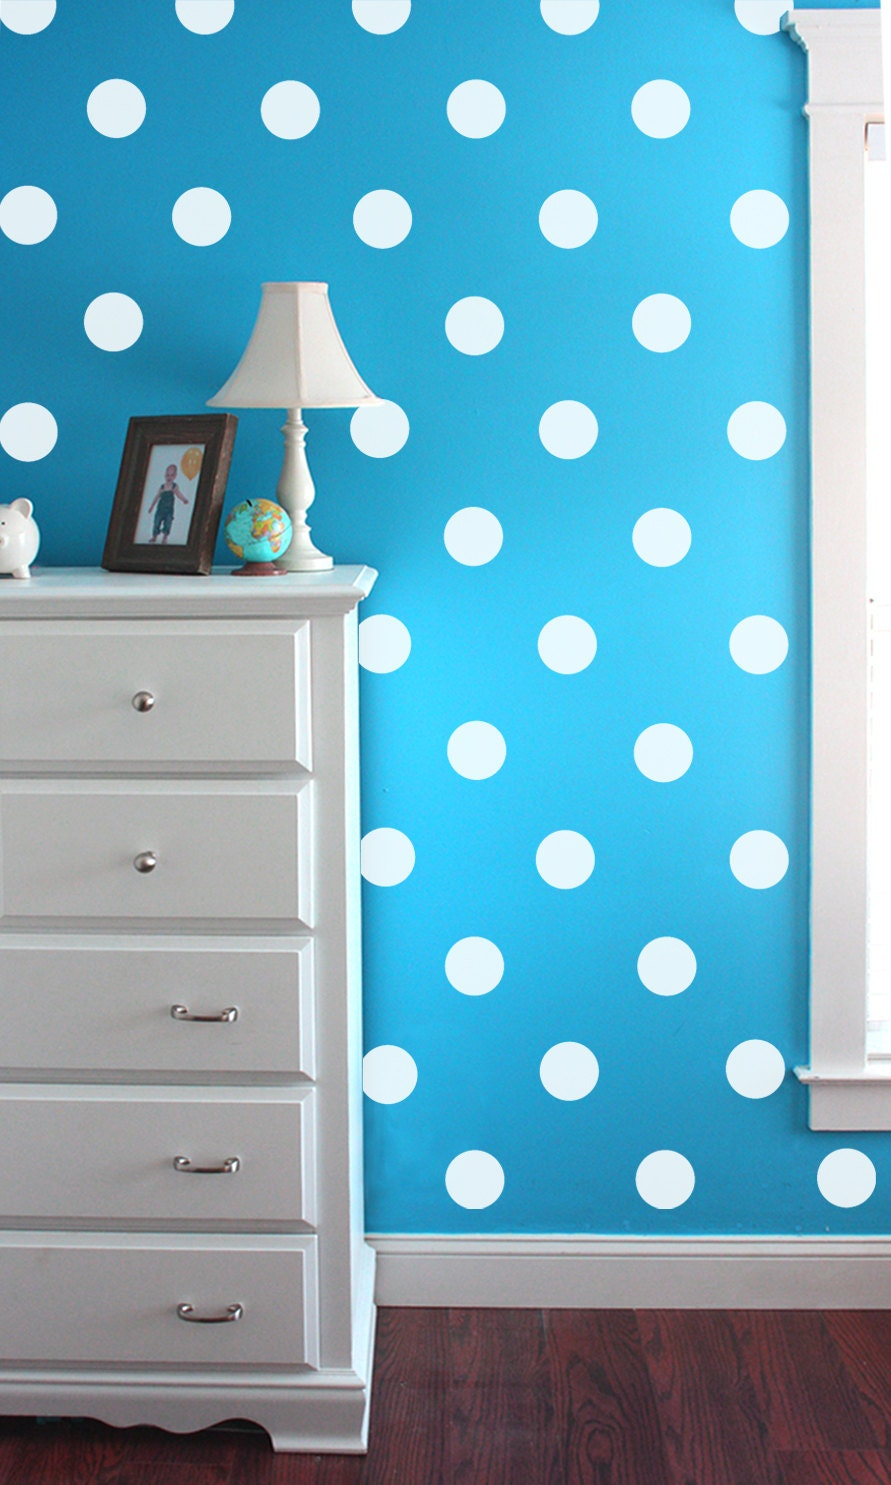 vinyl wall sticker decal art polka dots white polka dot. Black Bedroom Furniture Sets. Home Design Ideas